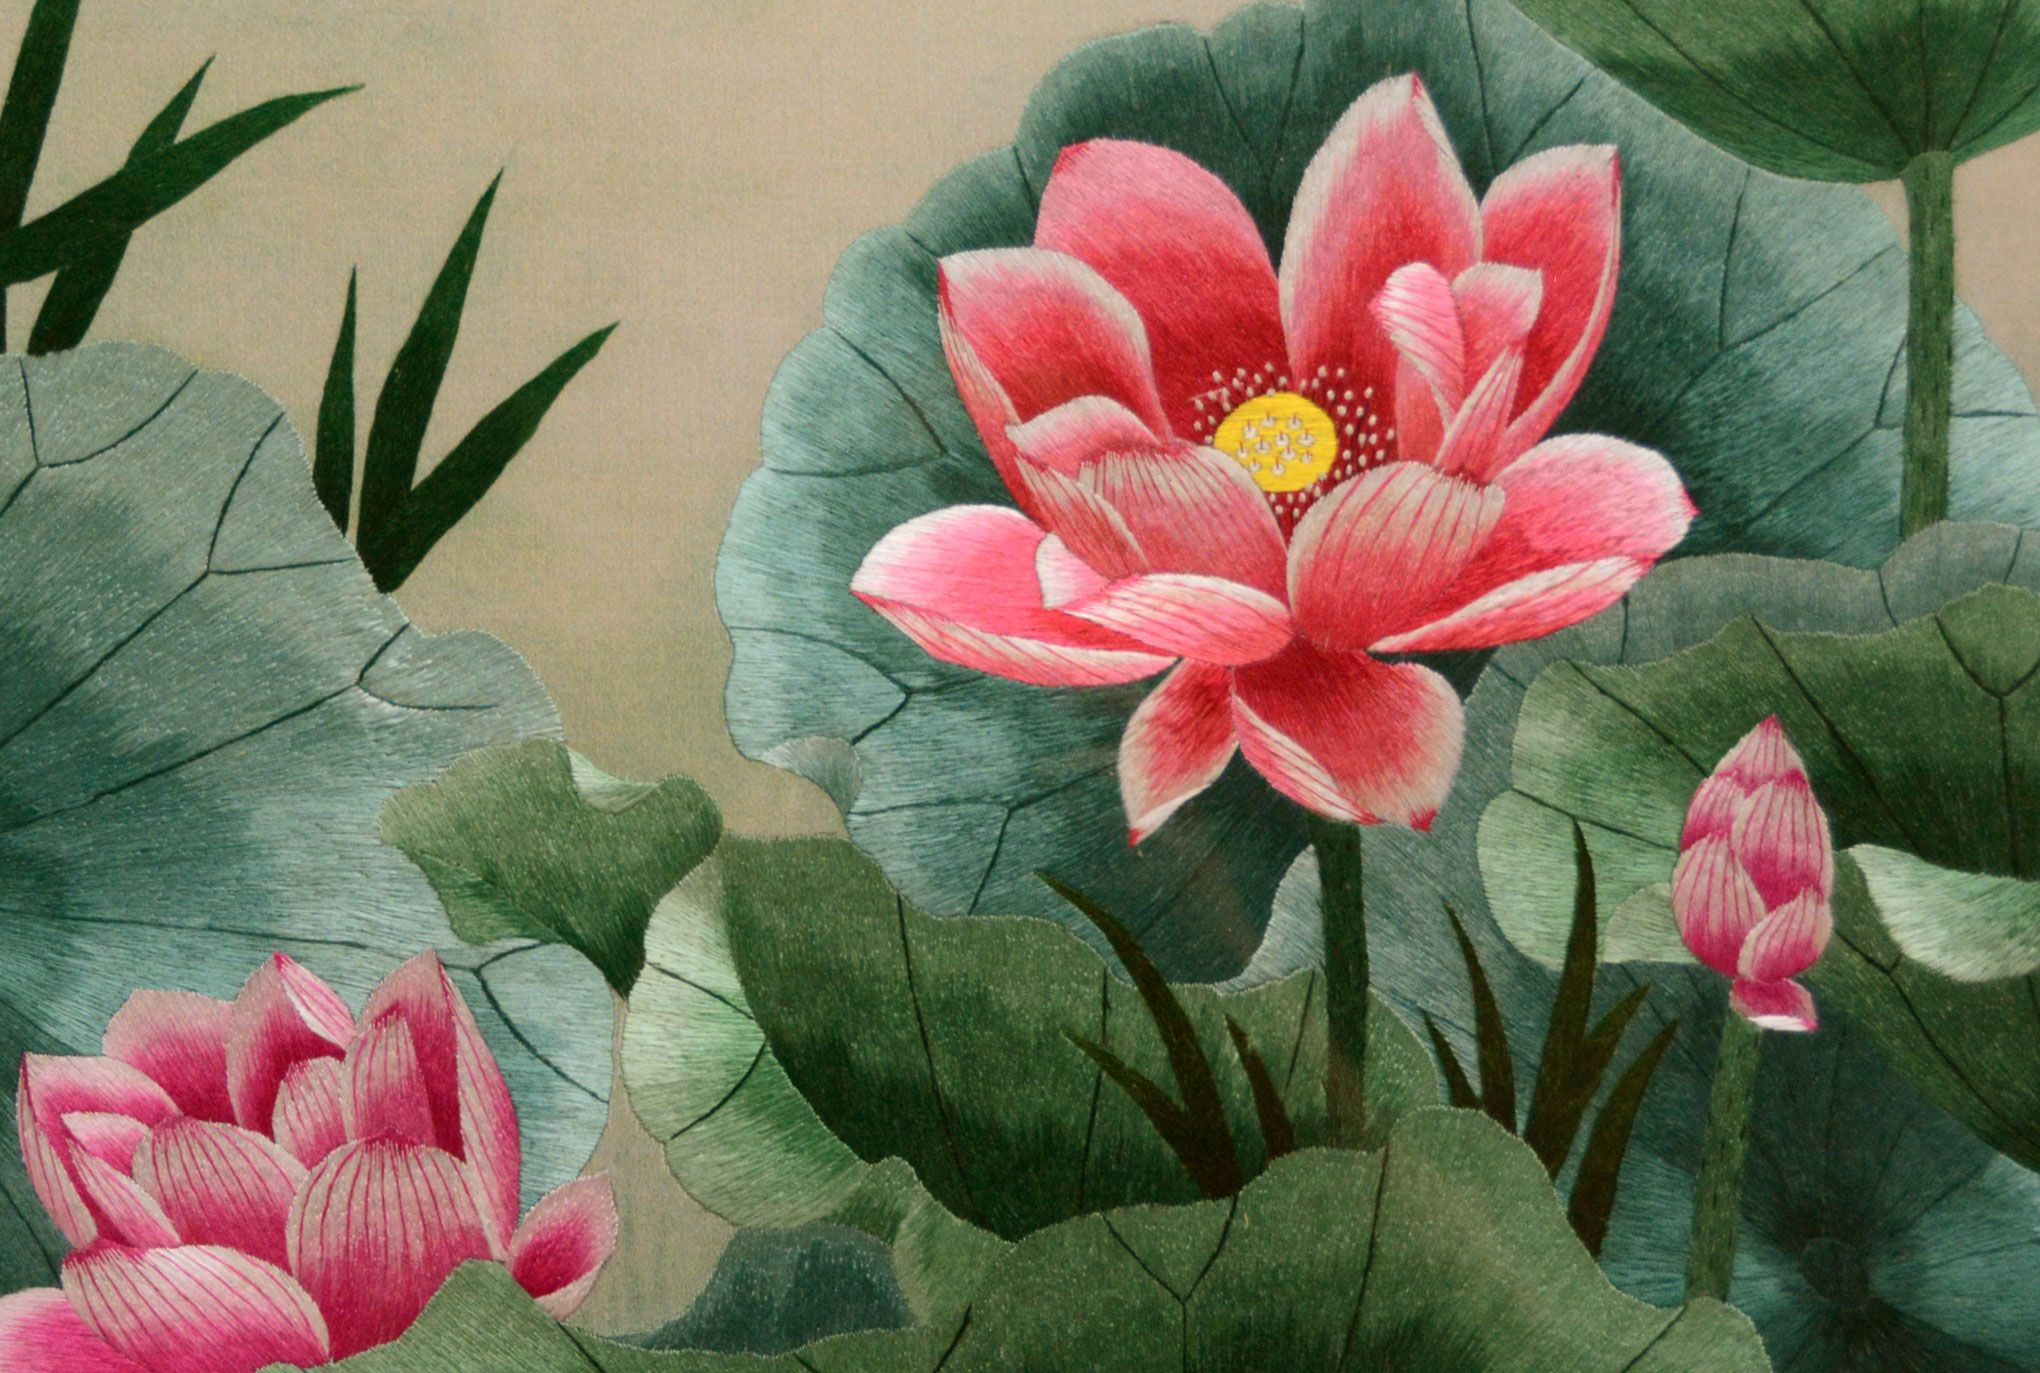 Lotus flowers silk embroidery ilk embroidery is a chinese art form lotus flowers silk embroidery ilk embroidery is a chinese art form with origins dating back izmirmasajfo